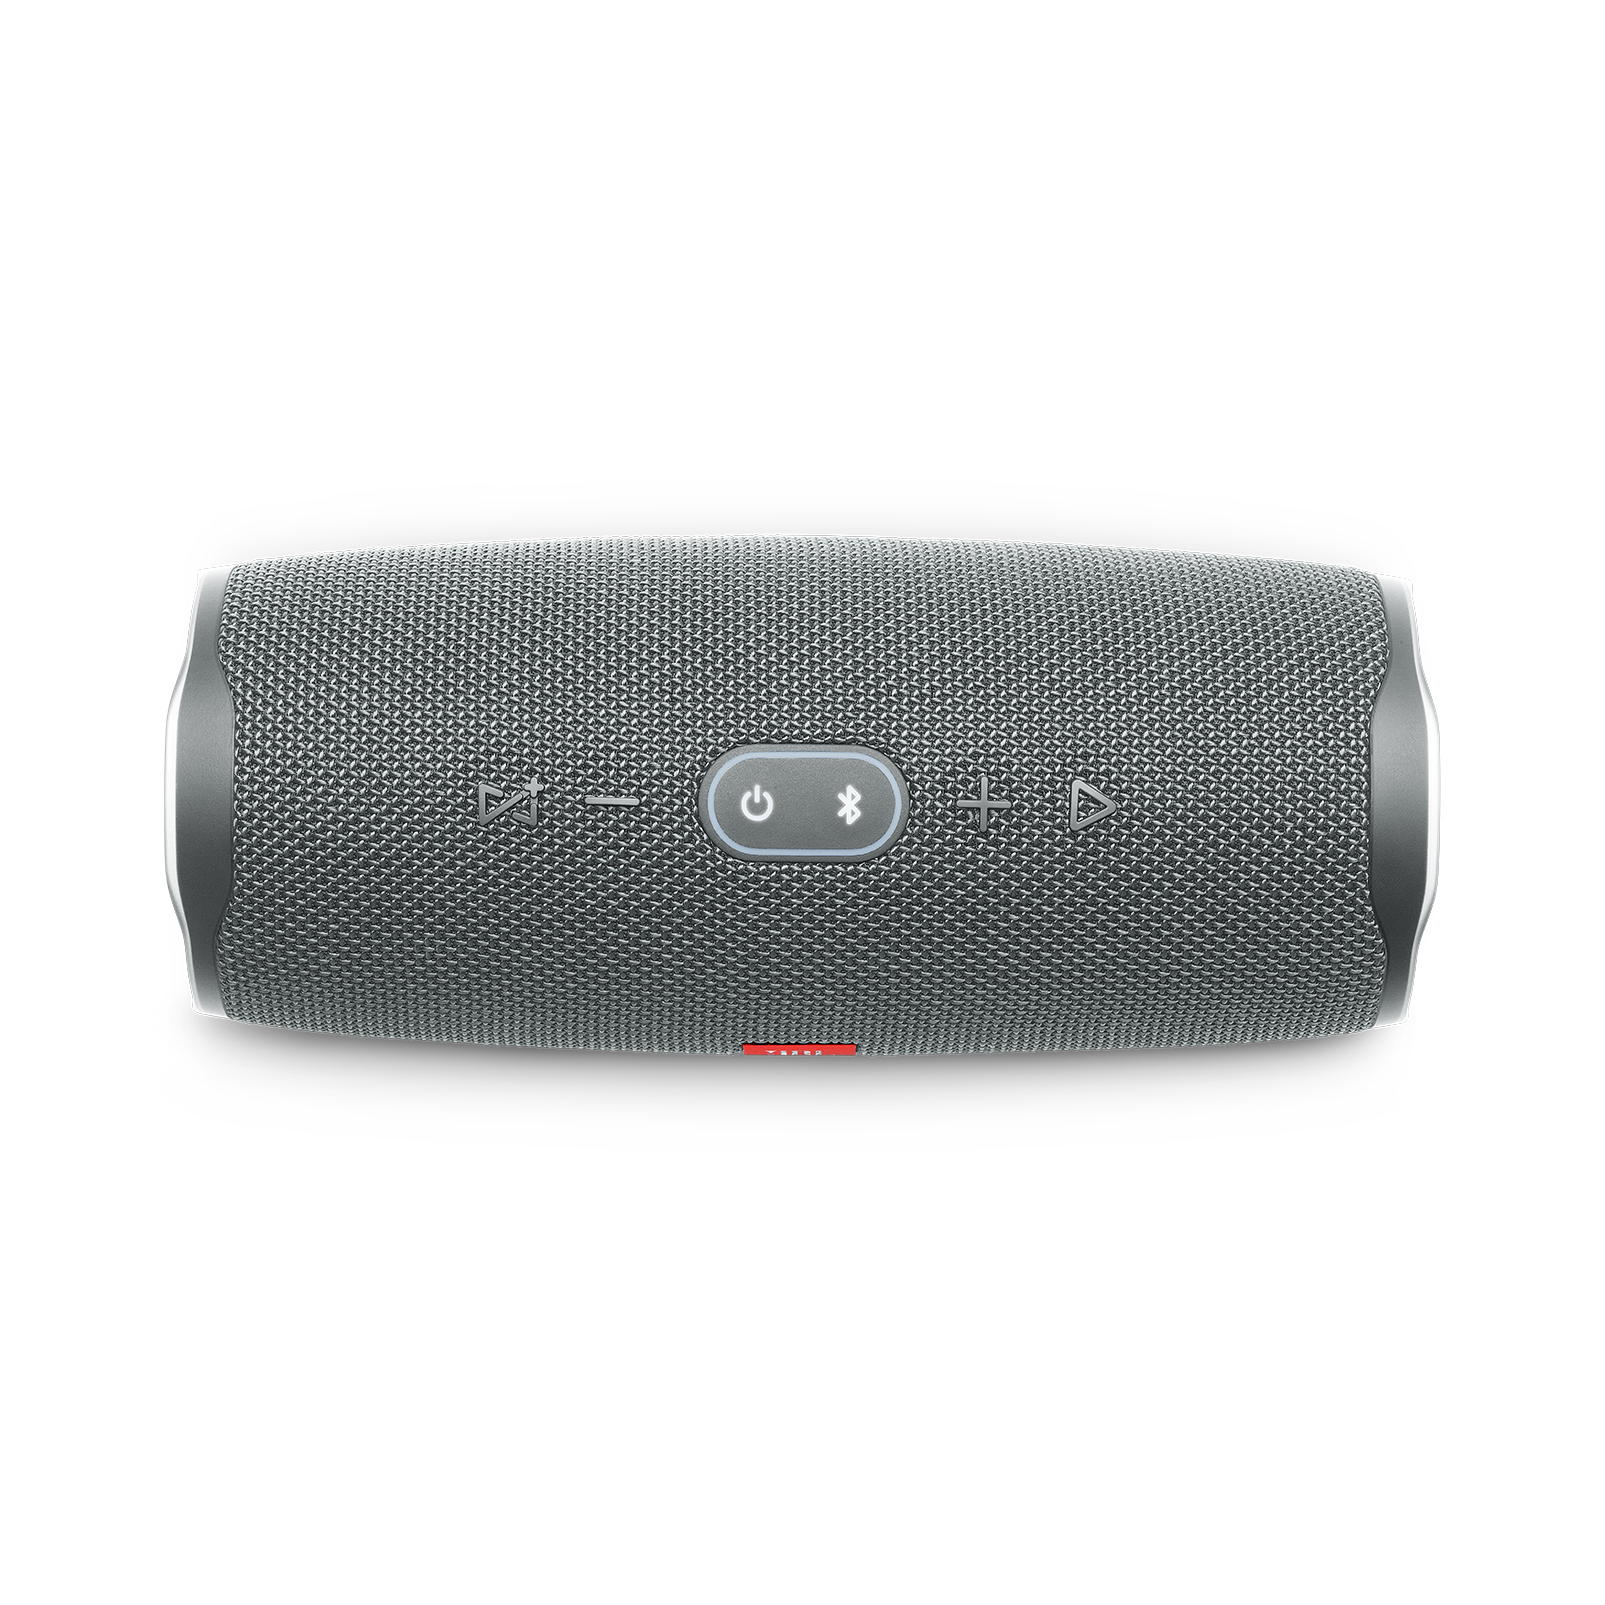 JBL Charge 4 - Grey - Portable Bluetooth speaker - Detailshot 1